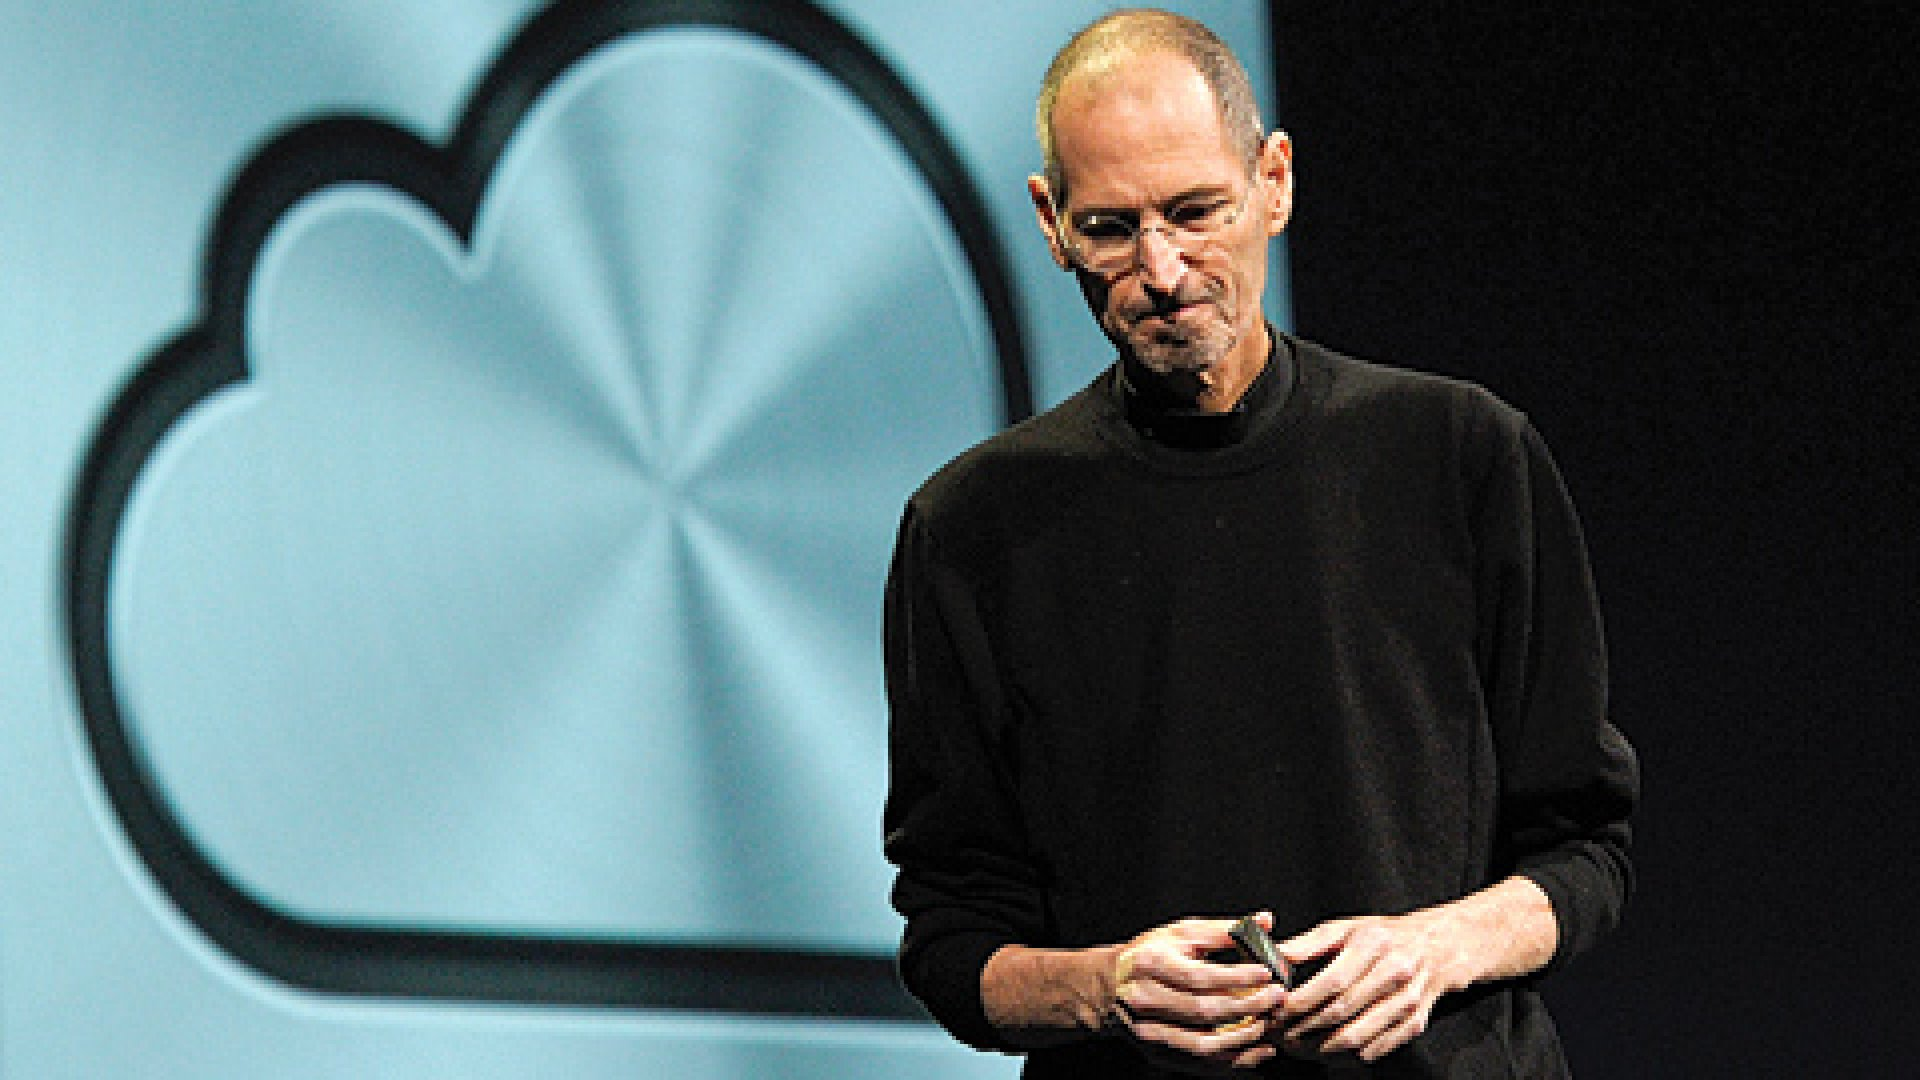 Steve Jobs unveils the iCloud storage system at the Apple Worldwide Developers Conference 2011 in San Francisco, California.